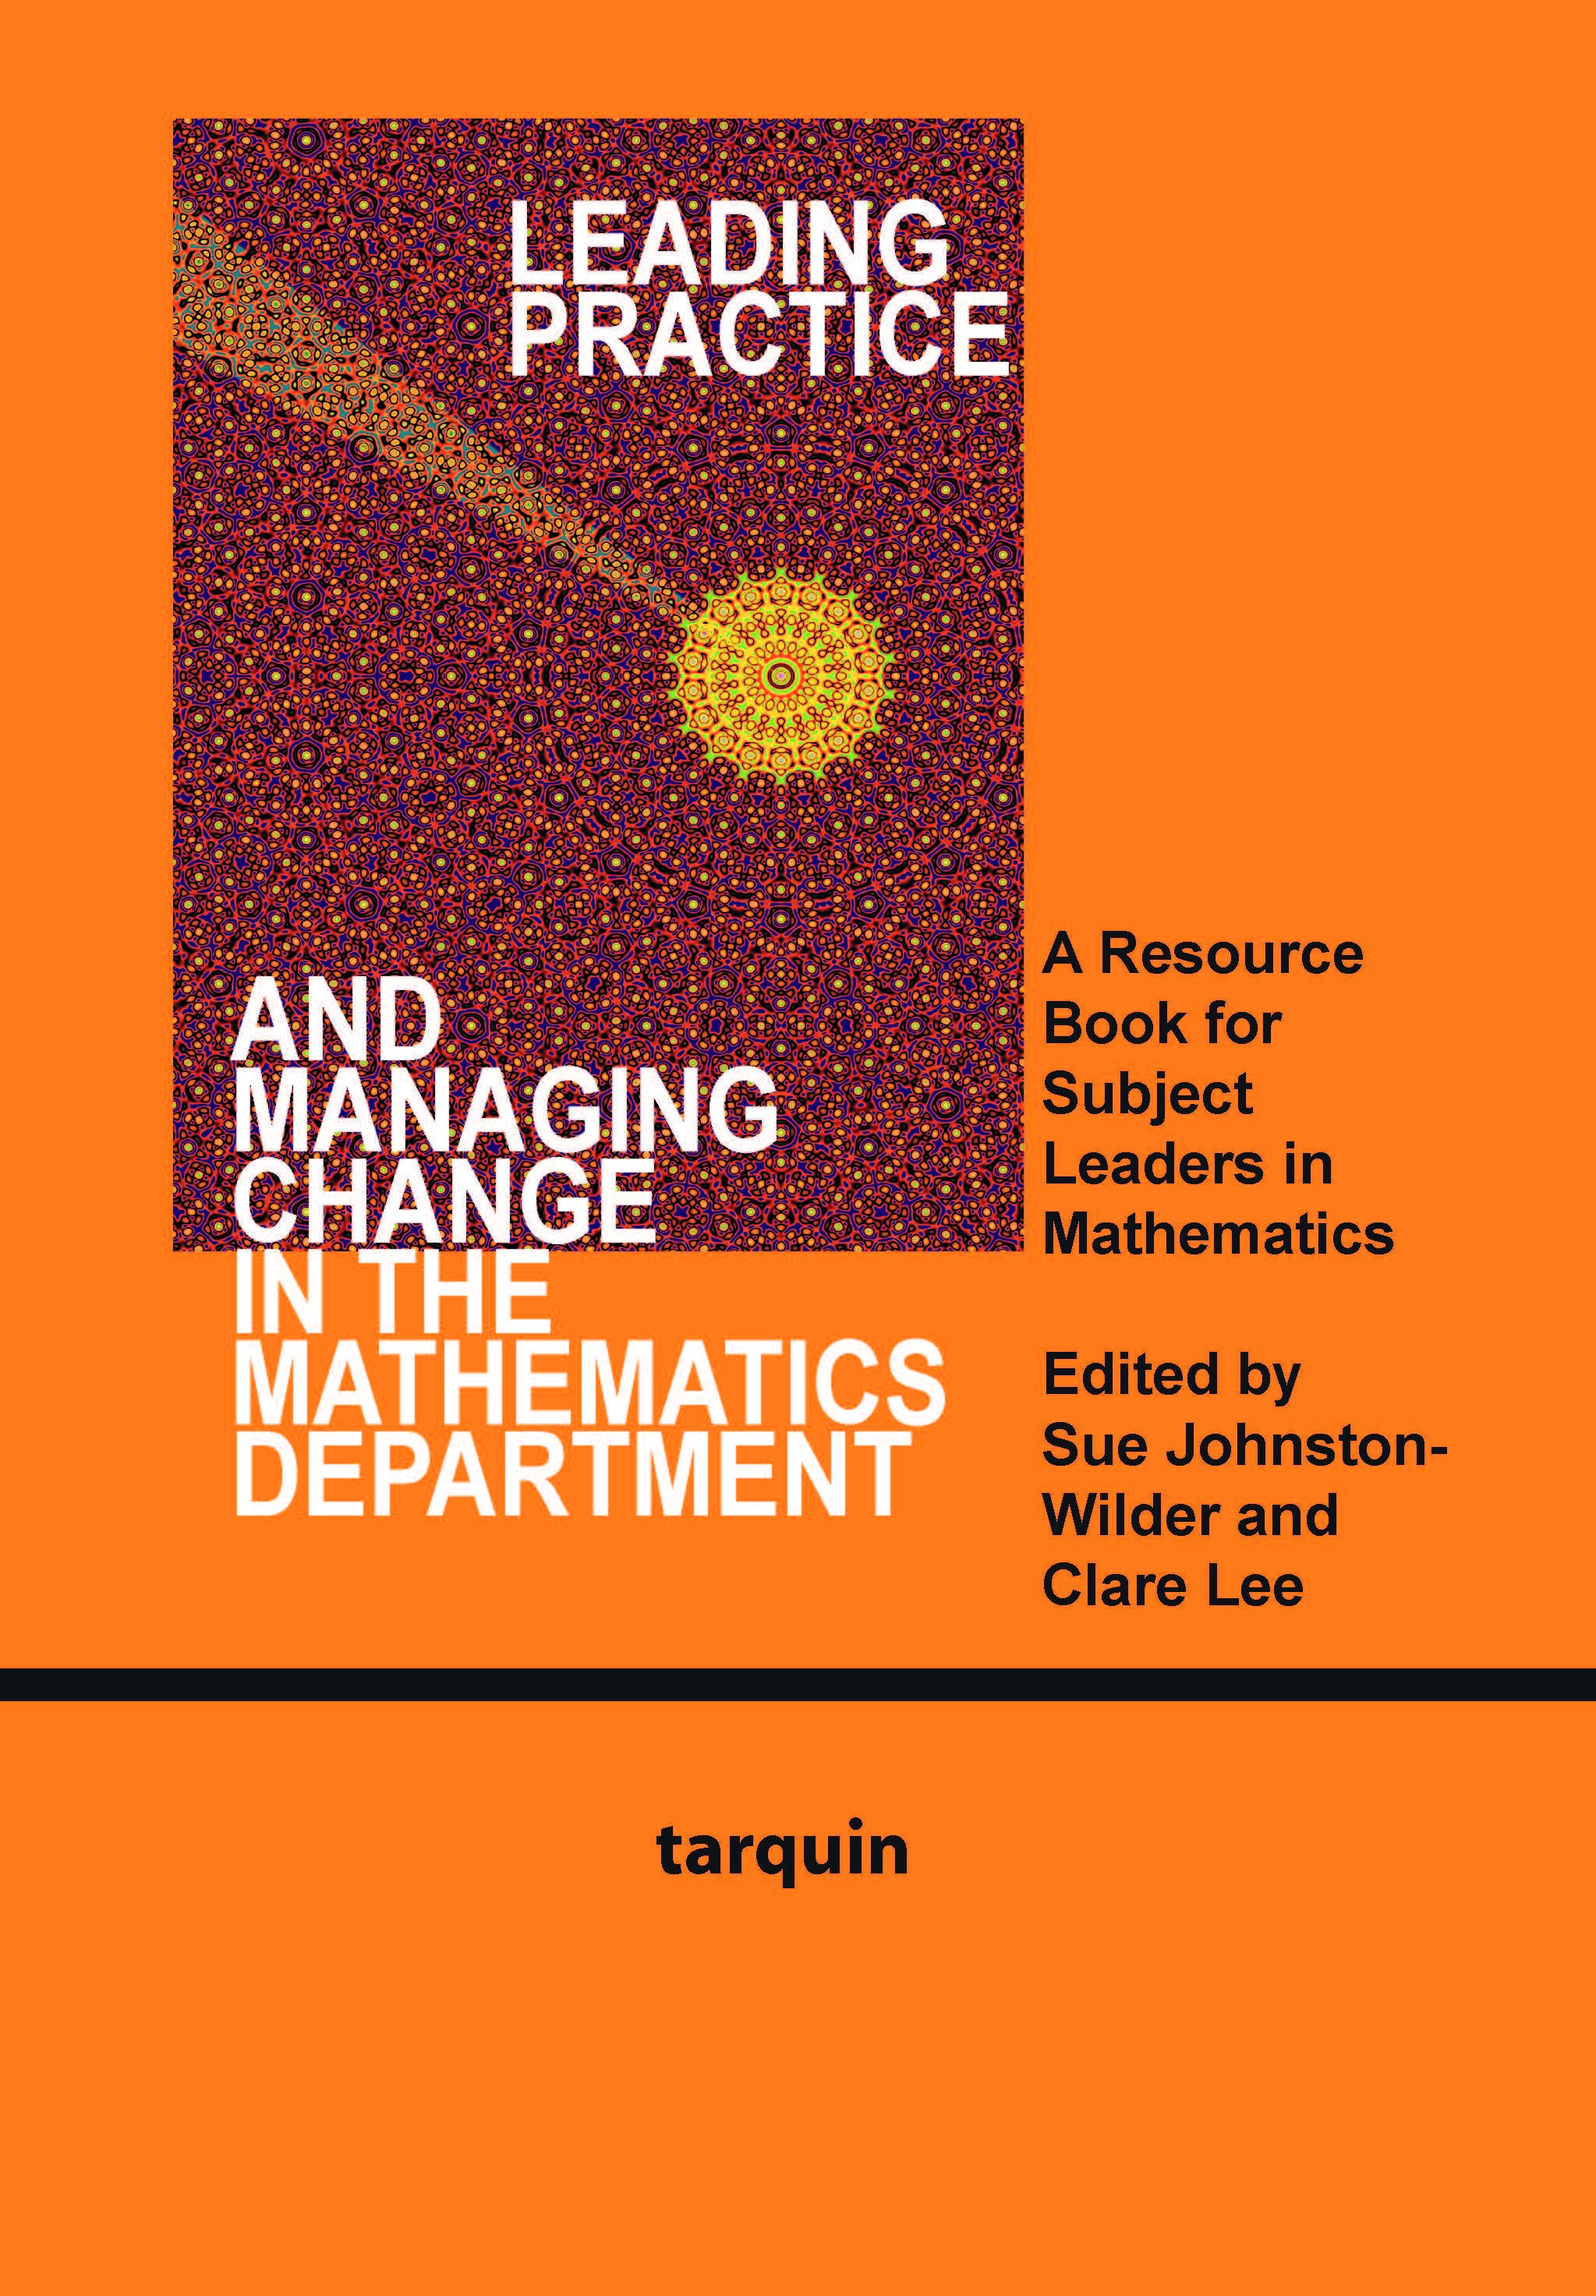 Leading Practice and Managing Change in the Mathematics Department: A Resource for Subject Leaders in Mathematics